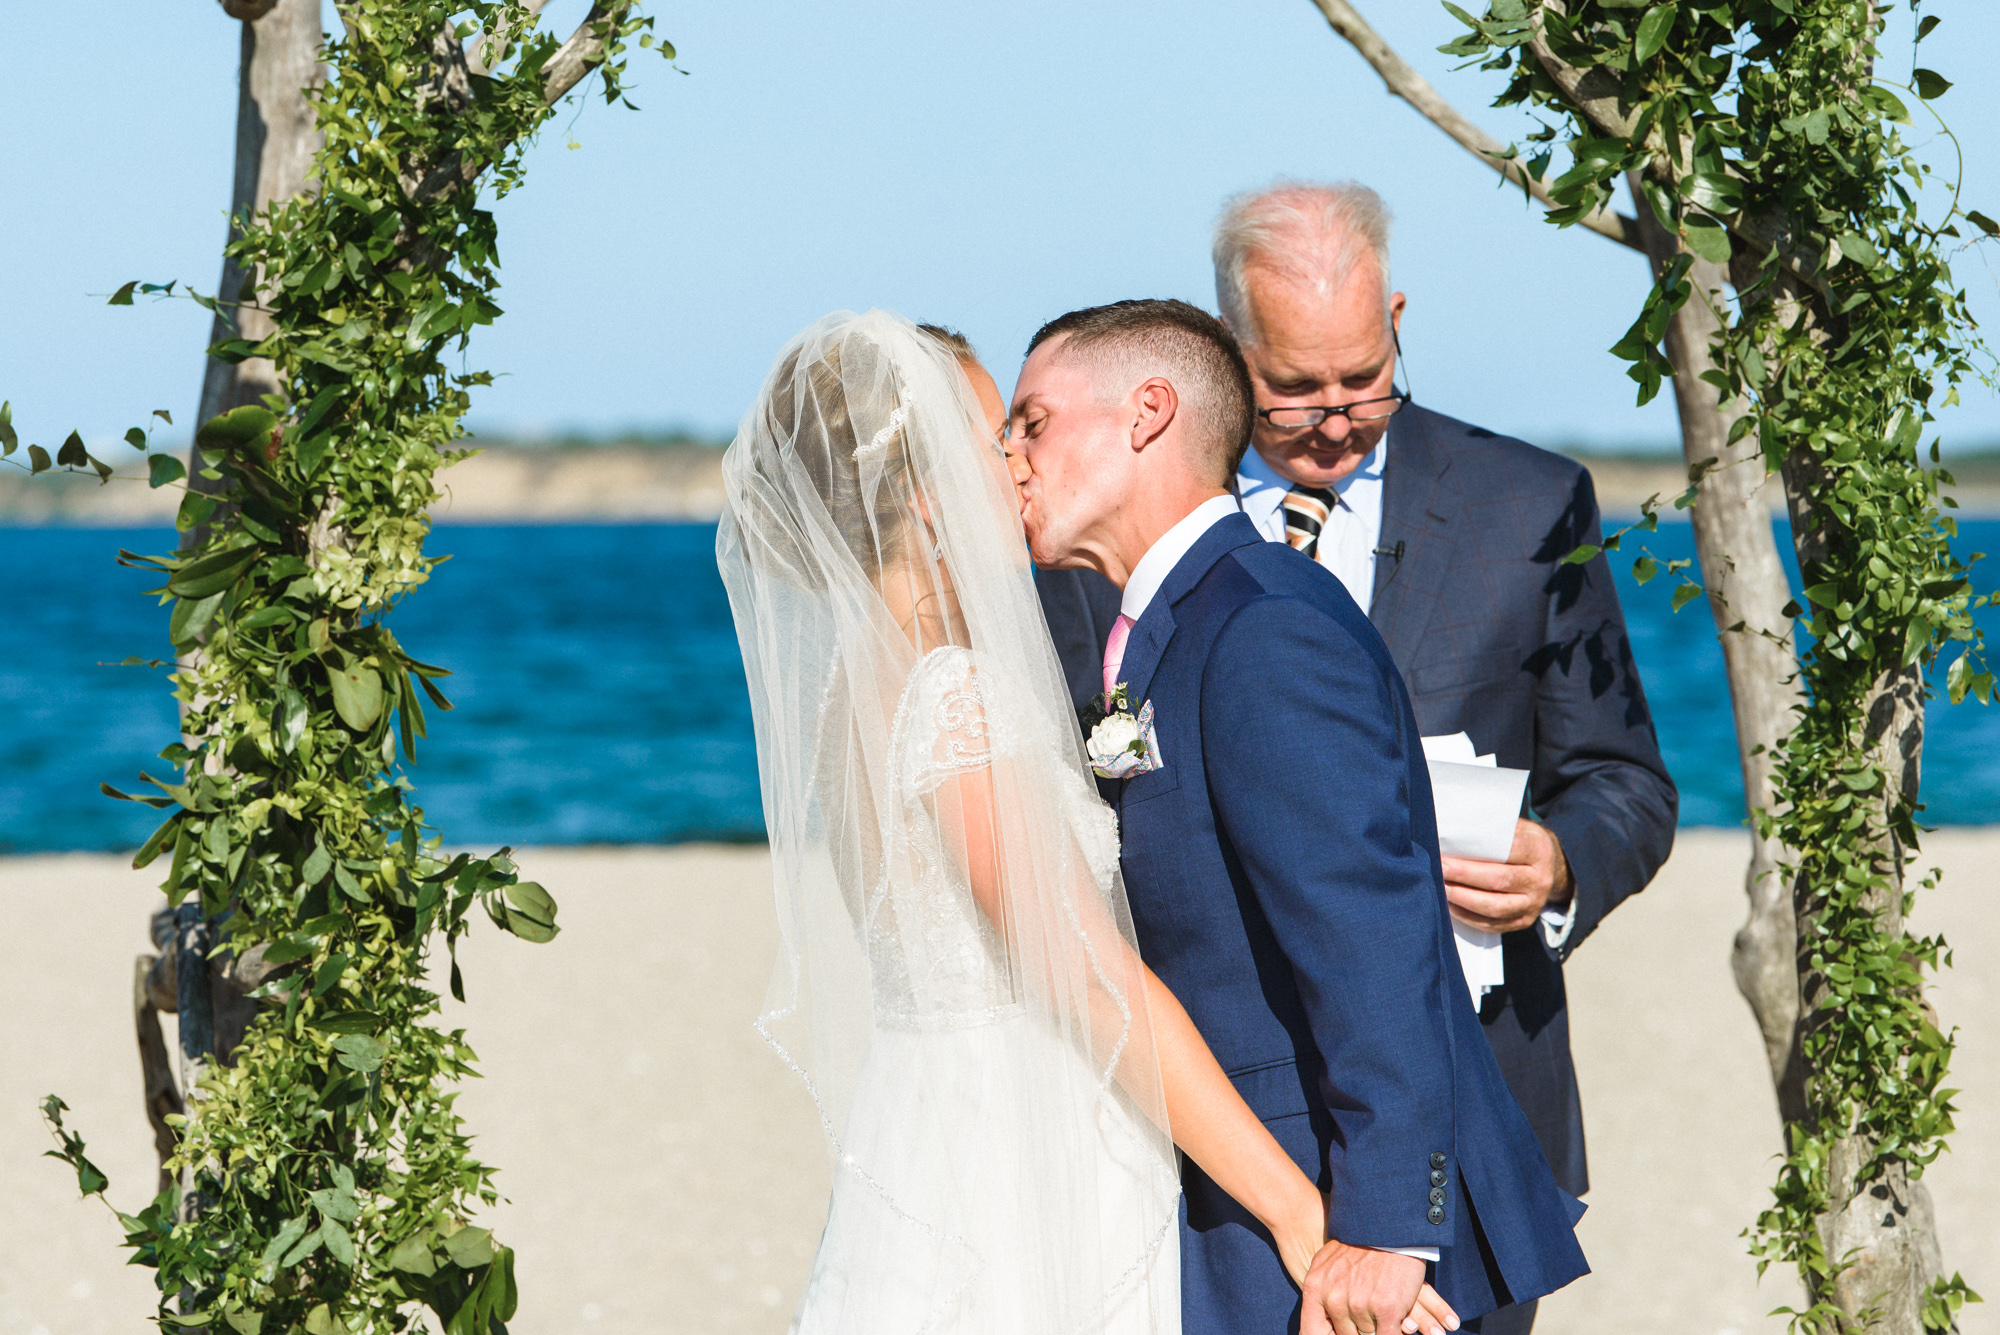 Cheers to the newlyweds married near the Edgartown Lighthouse photo by David Welch Photography